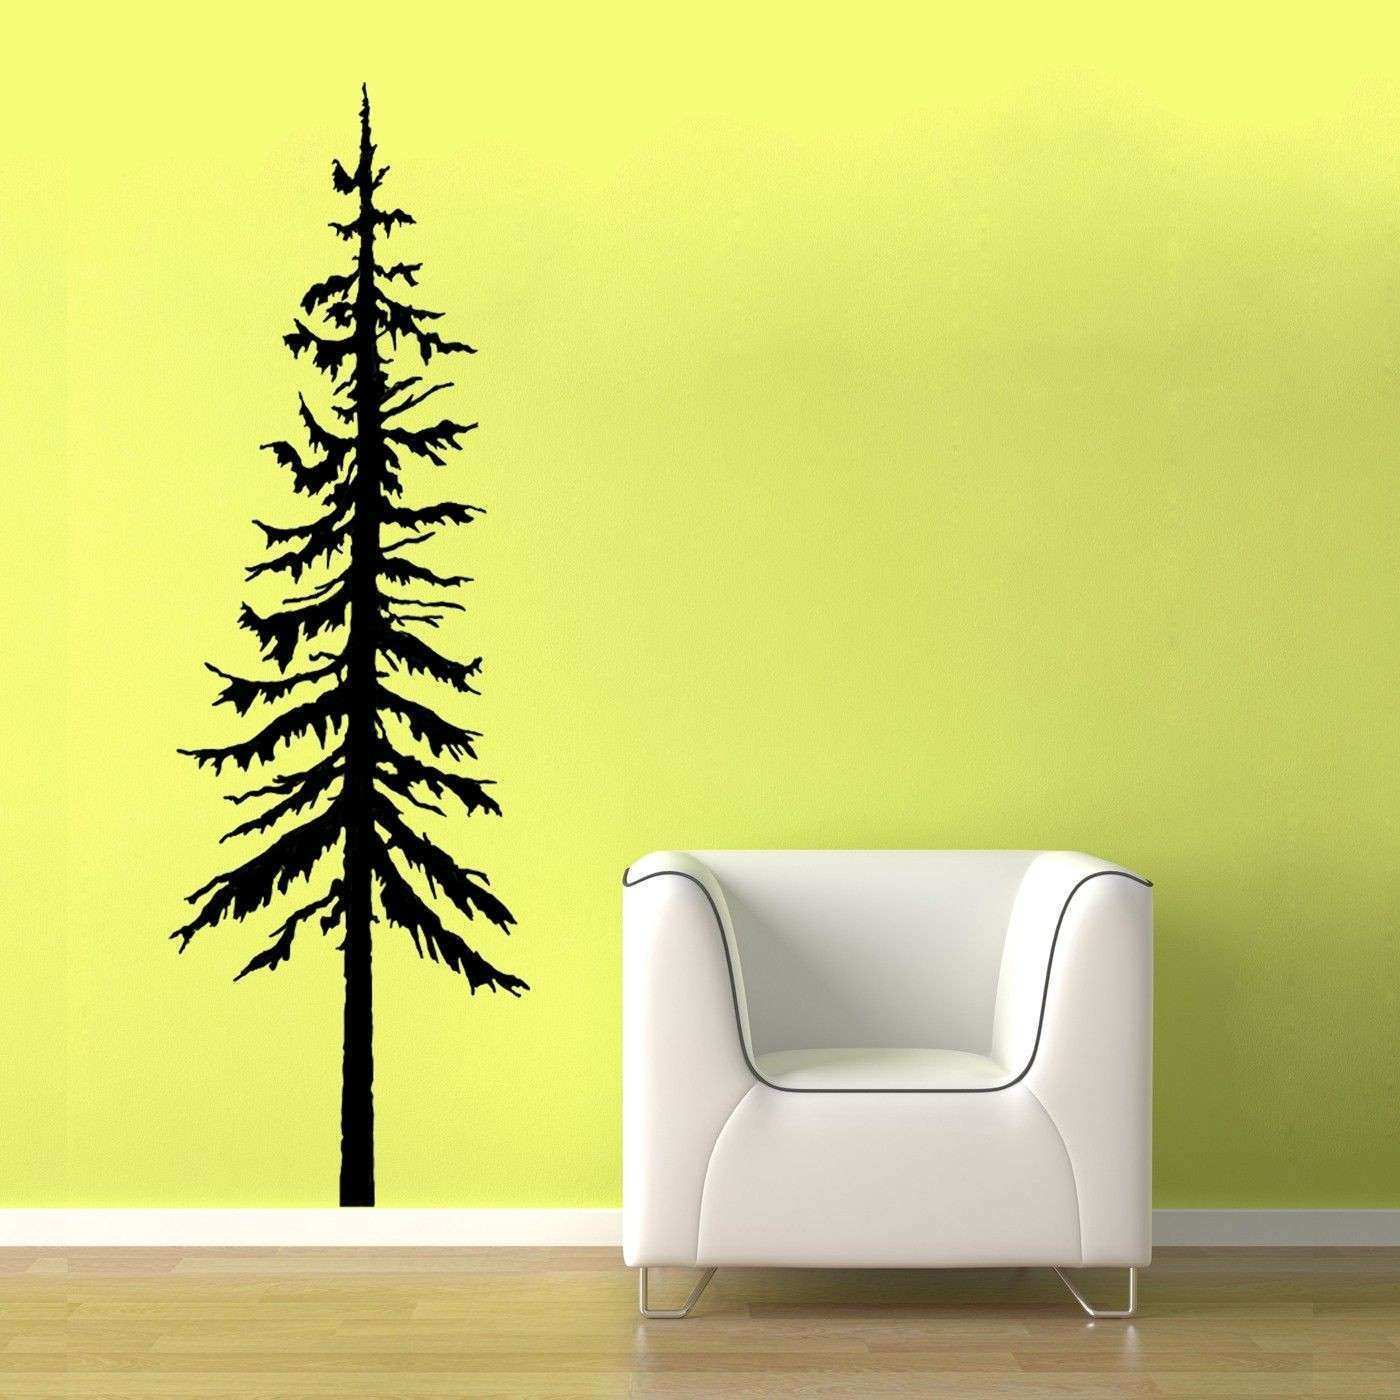 Pine Tree Decal vinyl wall graphic Pine Tree Decal Pine Trees